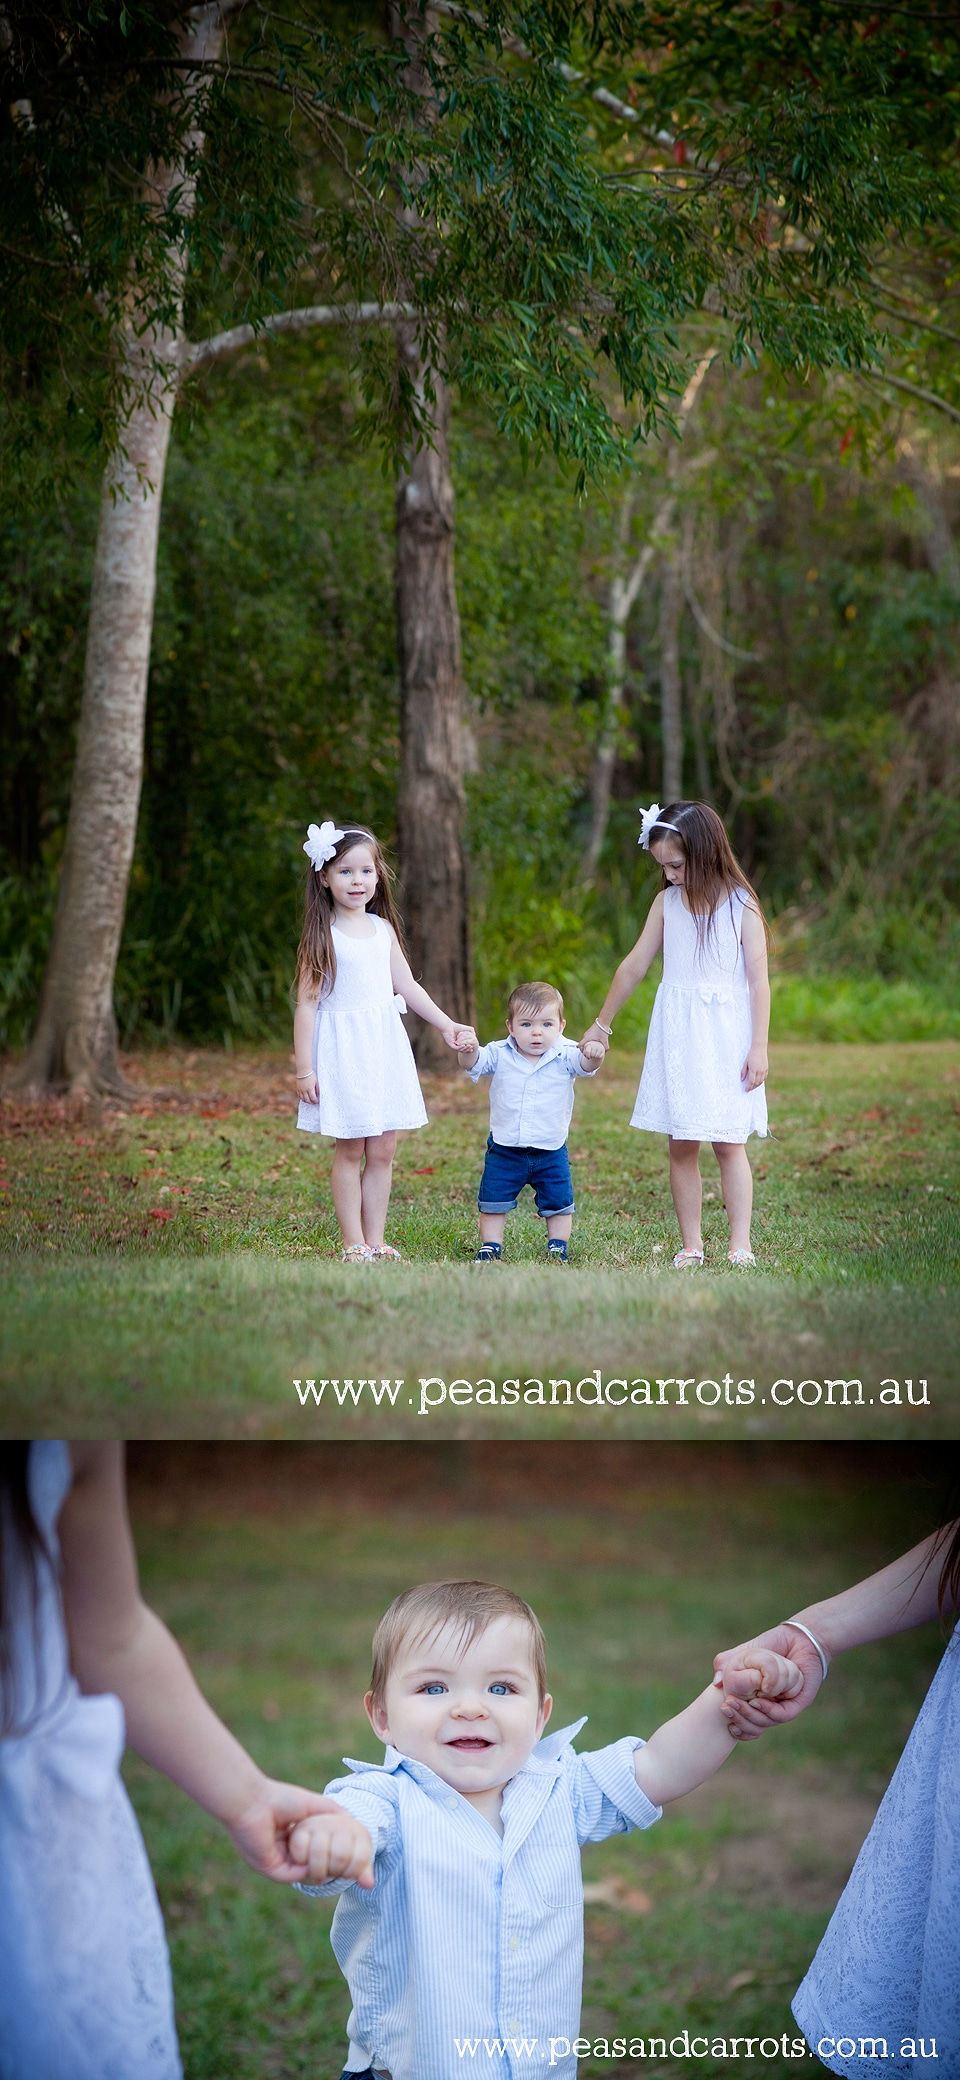 Brisbane, Dayboro and Samford Baby, Children & Family Portrait Photography ~ Peas & Carrots Photography.  Award winning children